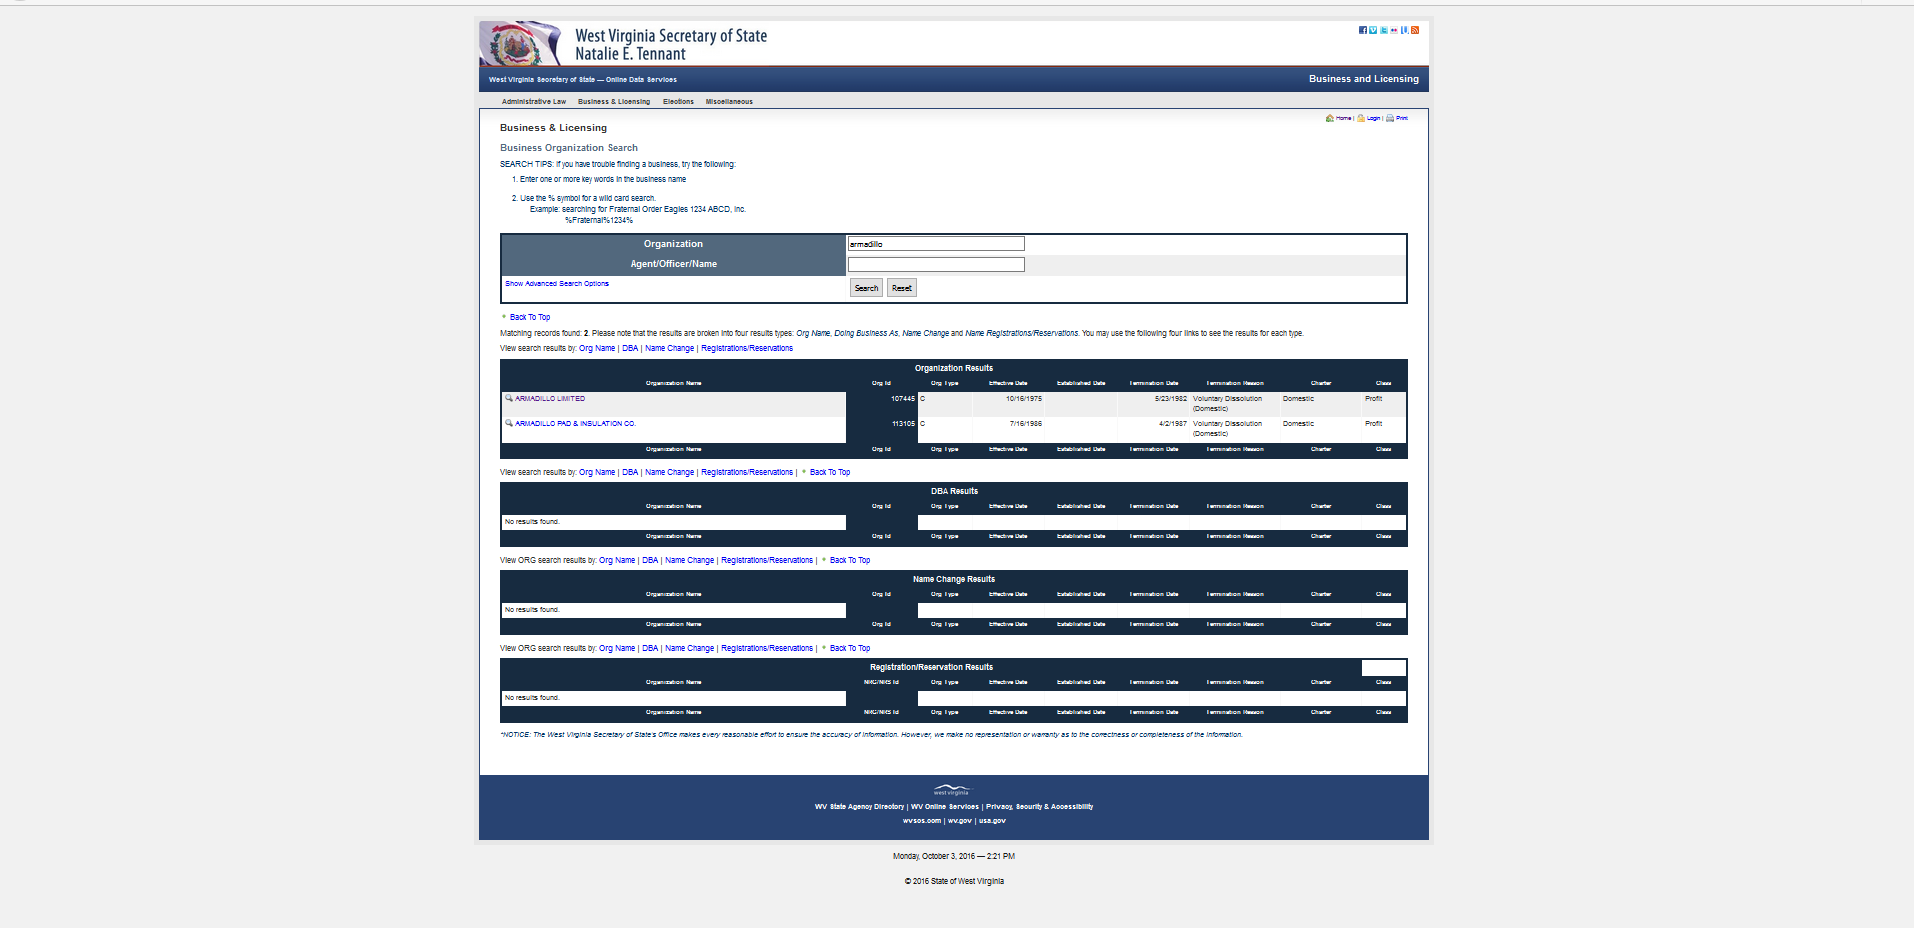 Free West Virginia Articles Of Incorporation Templates | WV